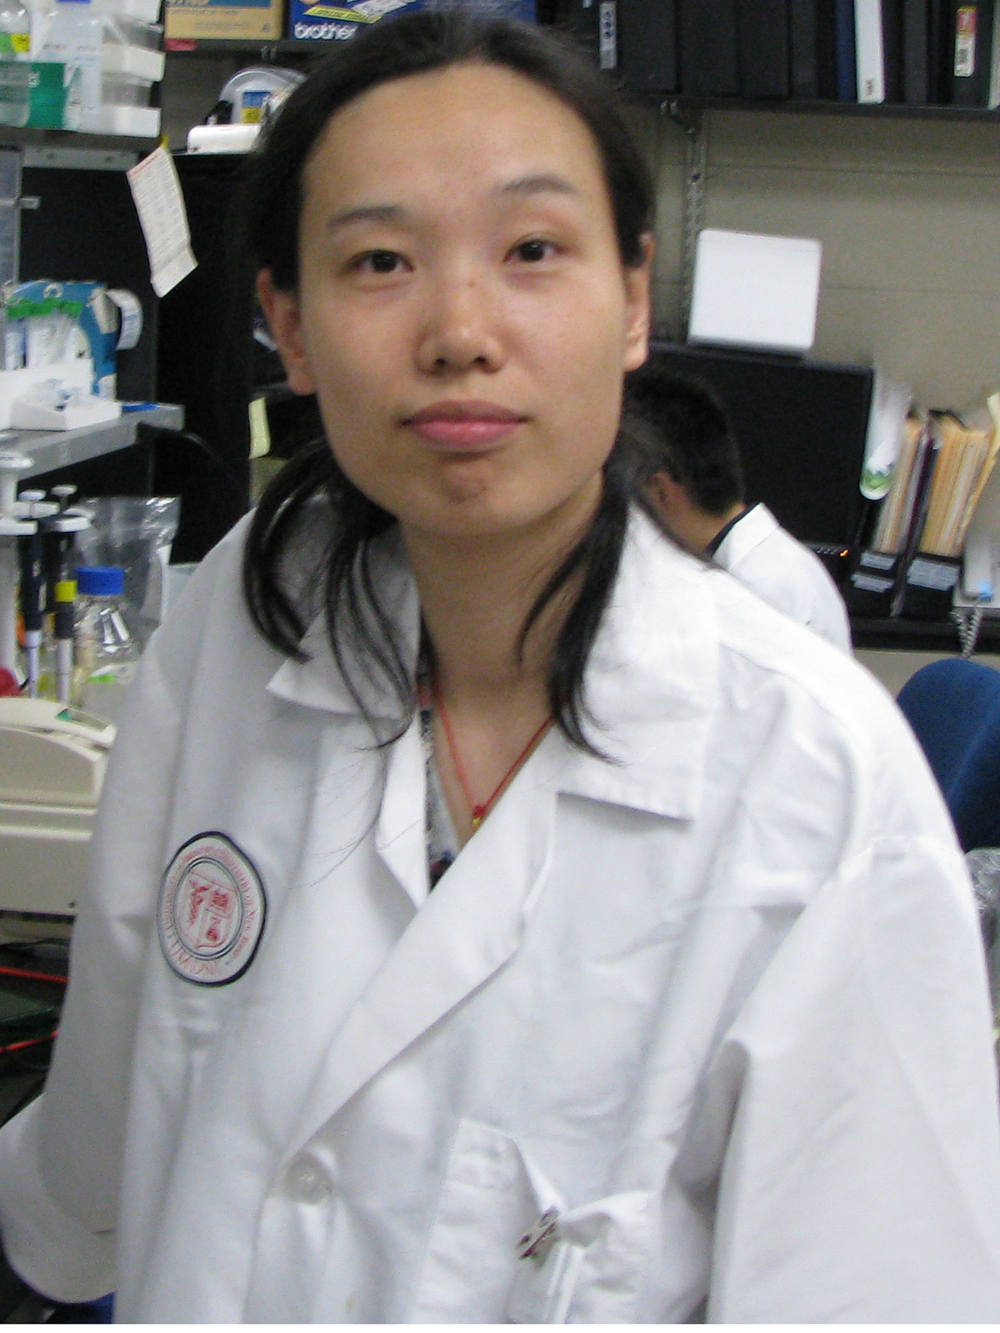 Dan Shao, PhD 2012-2014 Postdoctoral Fellow, Rutgers NJMS 2007-2012 PhD Student: Department of Cell Biology and Molecular Medicine, UMDNJ Research Interests: Redox regulation in the heart